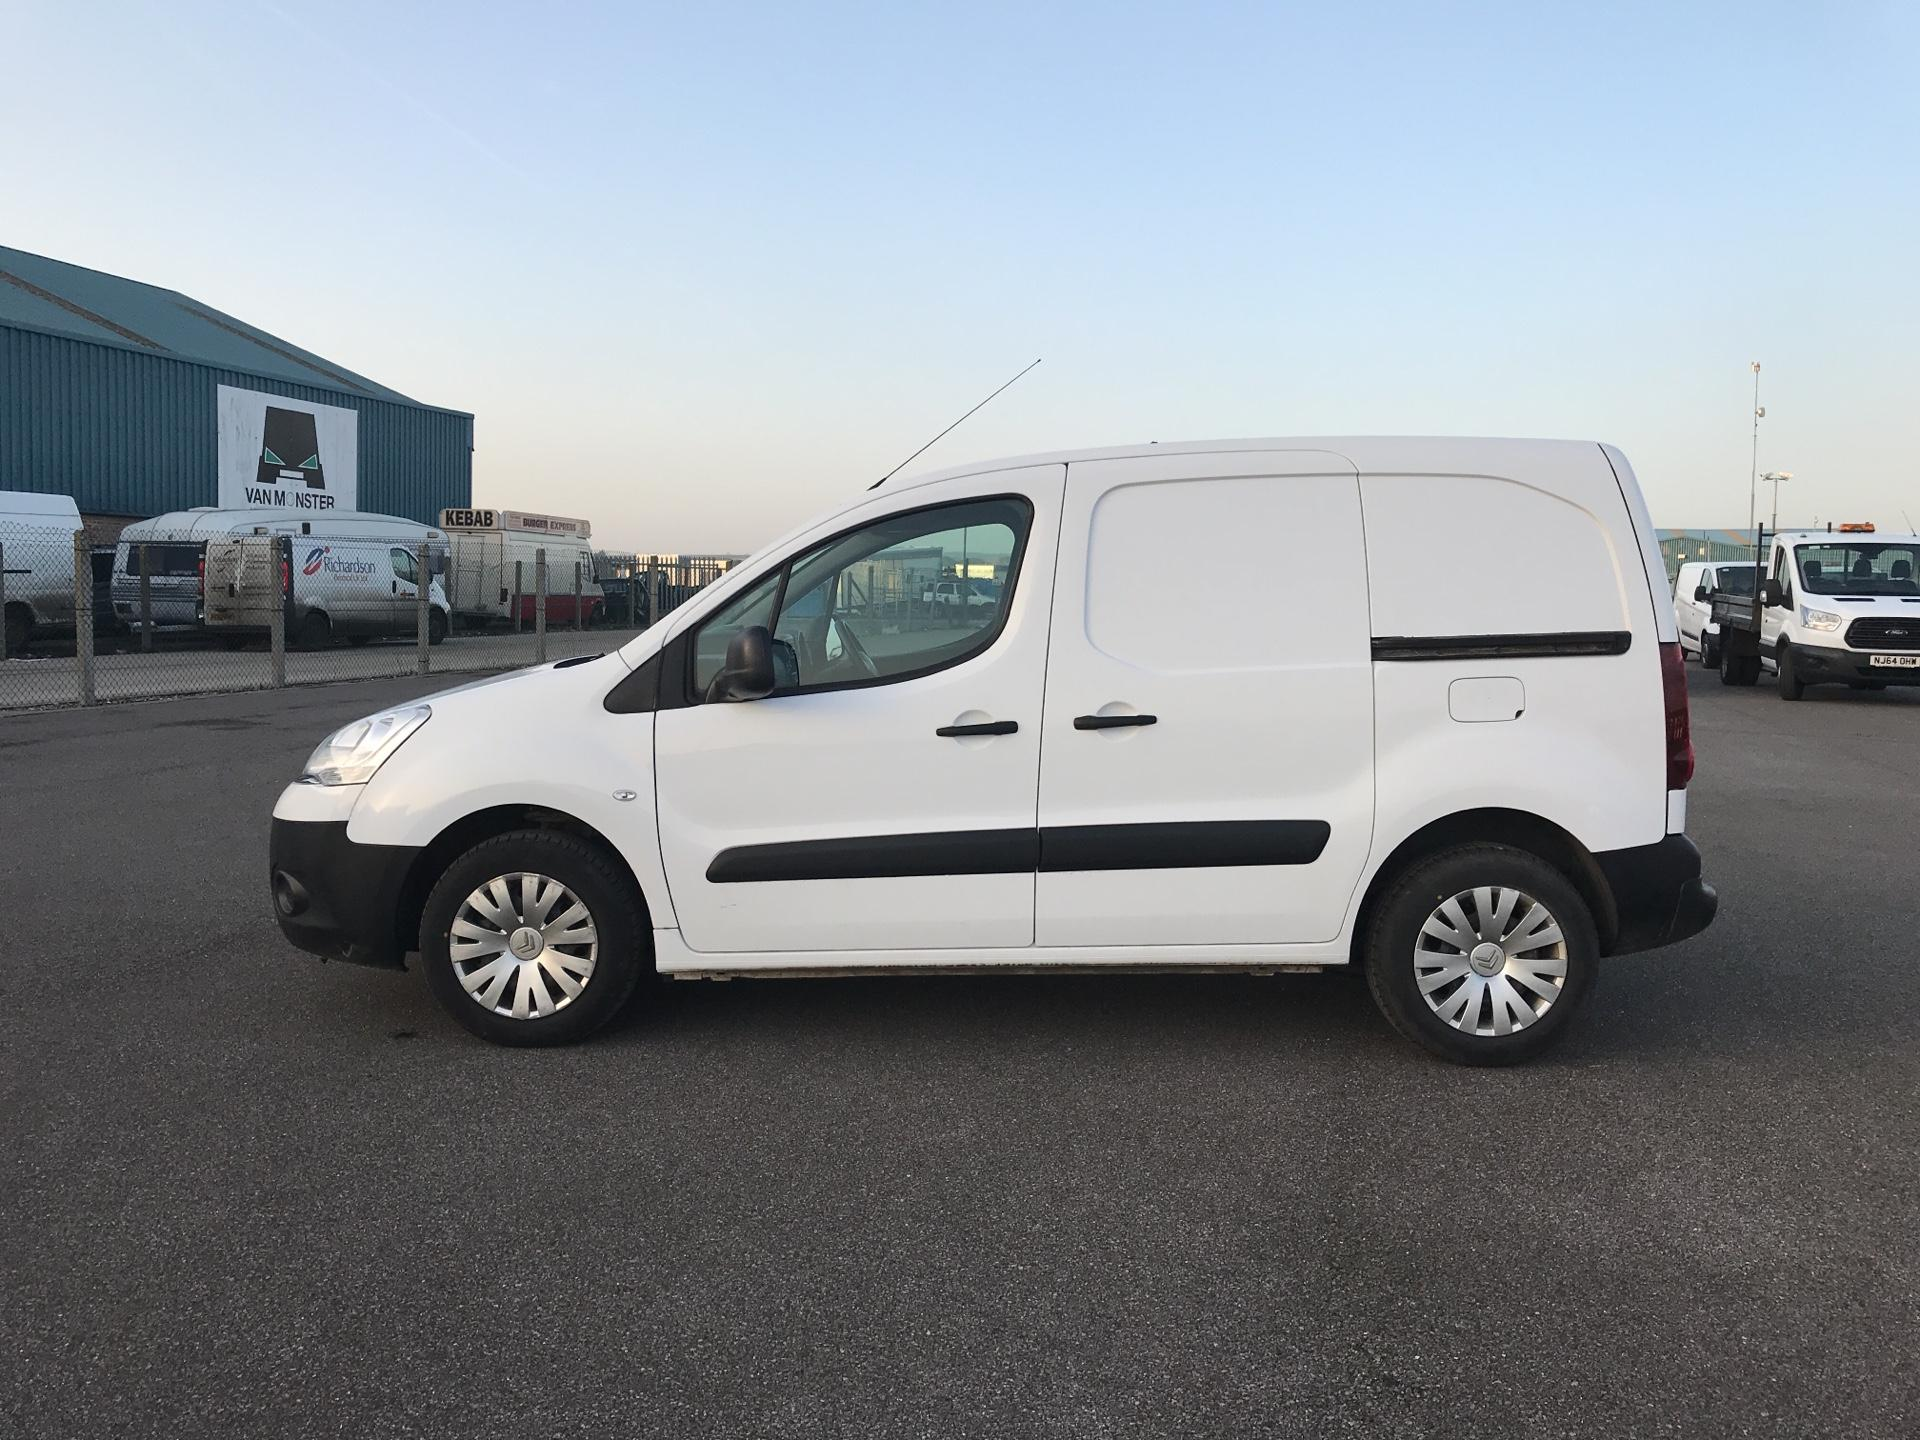 2014 Citroen Berlingo L1 DIESEL 1.6 HDI 625KG X 90PS (SLD) EURO 5. VALUE RANGE VEHICLE - CONDITION REFLECTED IN PRICE (BD64SVJ) Image 6